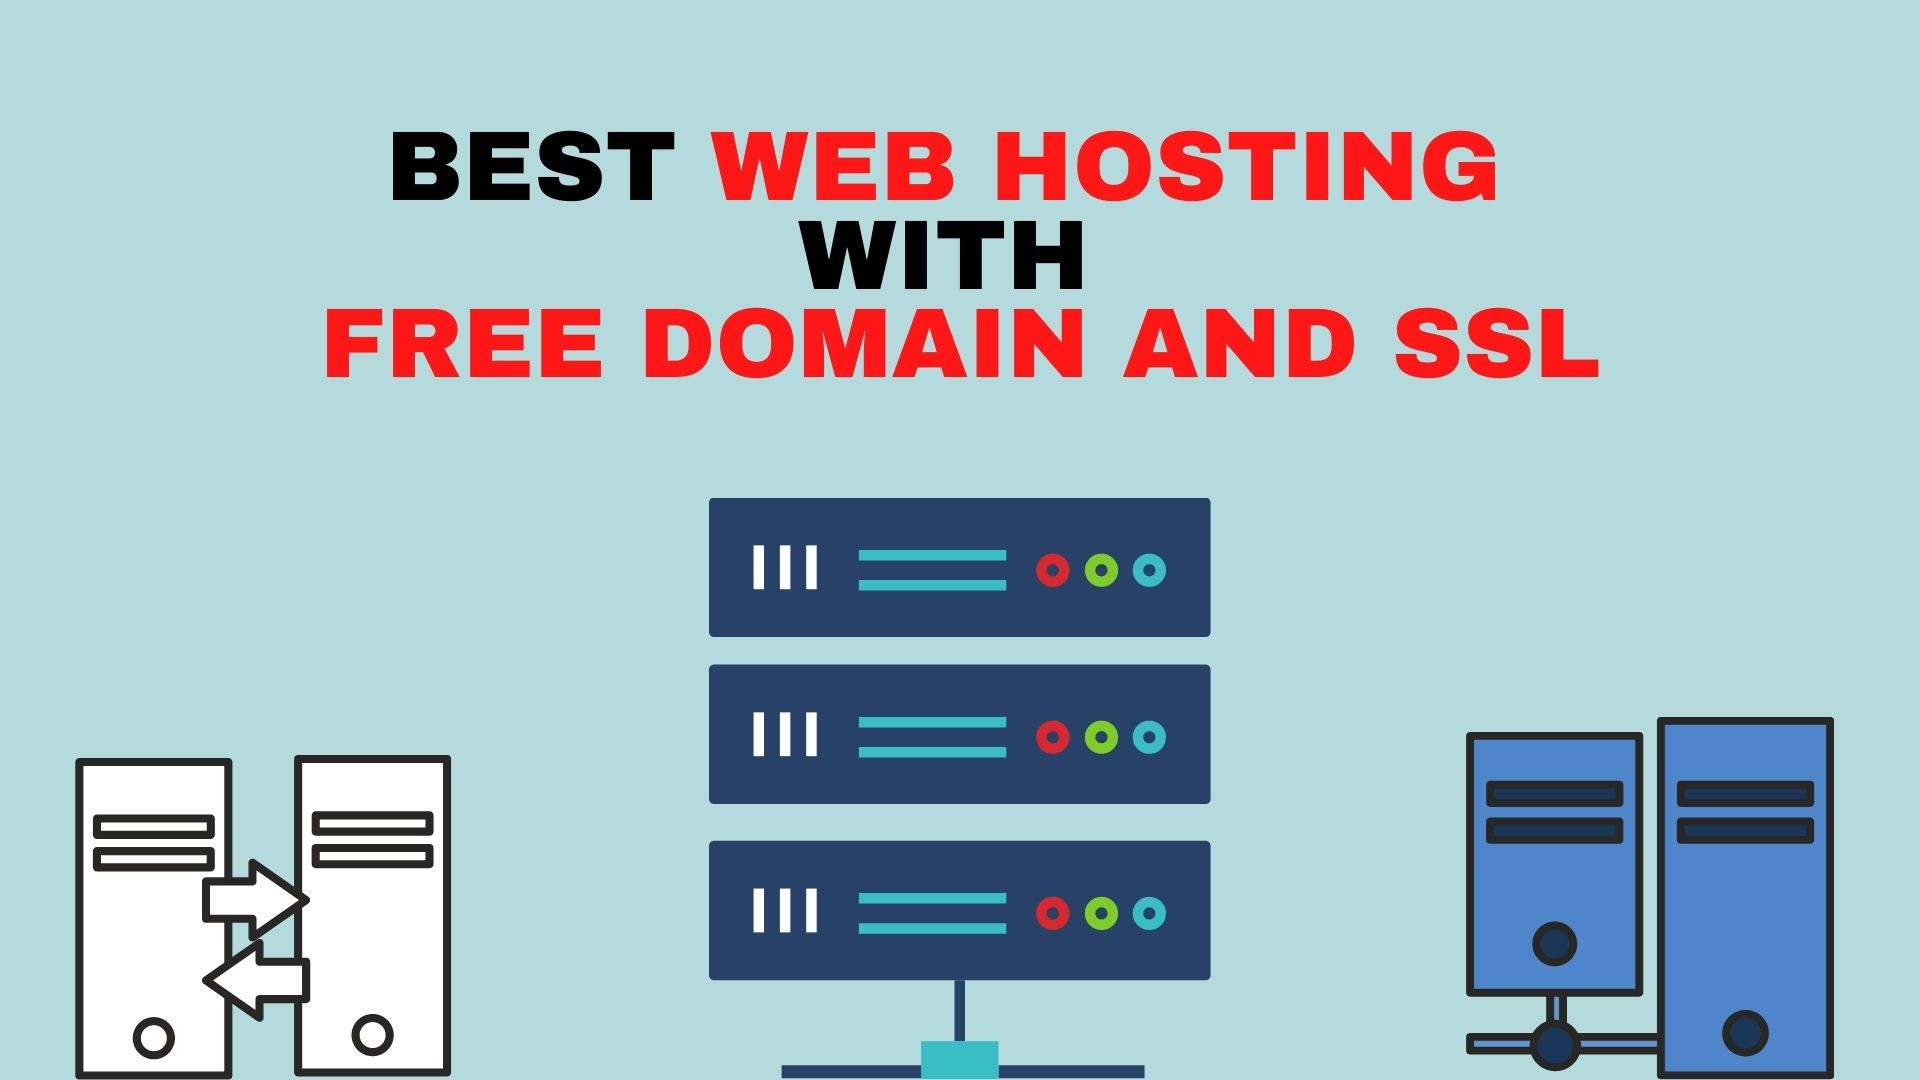 Best Web Hosting With Free Domain And SSL